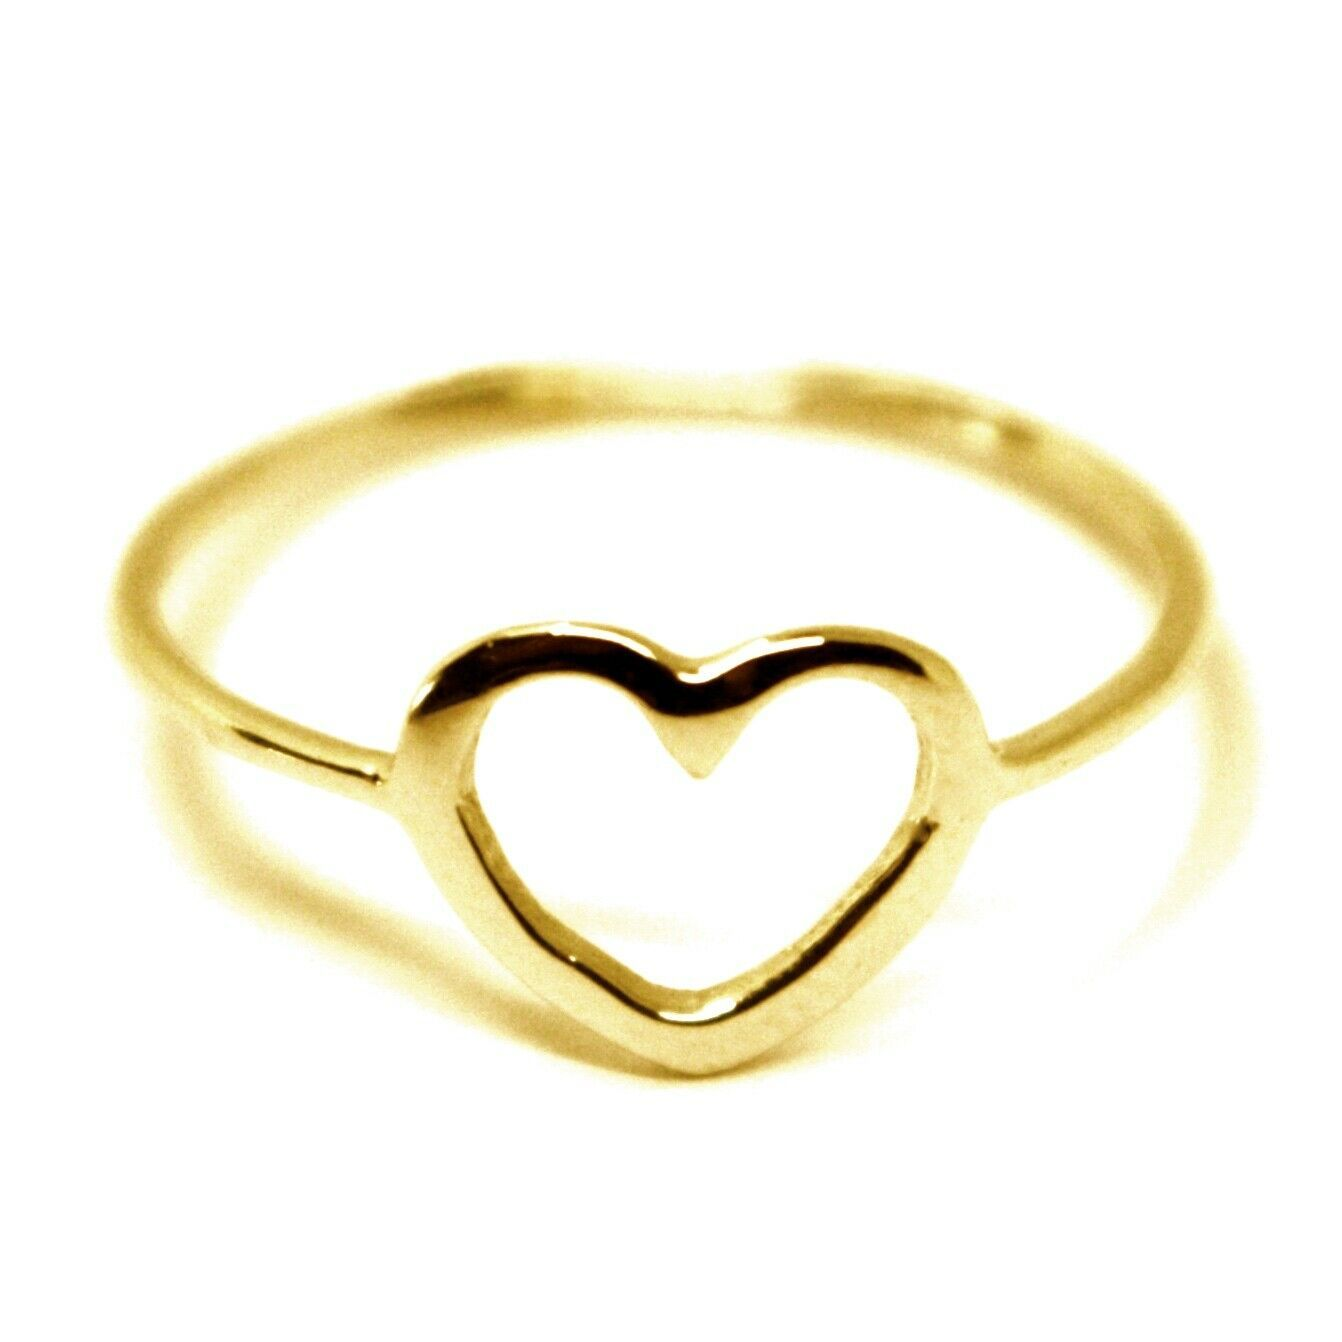 SOLID 18K YELLOW GOLD HEART LOVE RING, 10mm DIAMETER FLAT HEART CENTRAL, SMOOTH